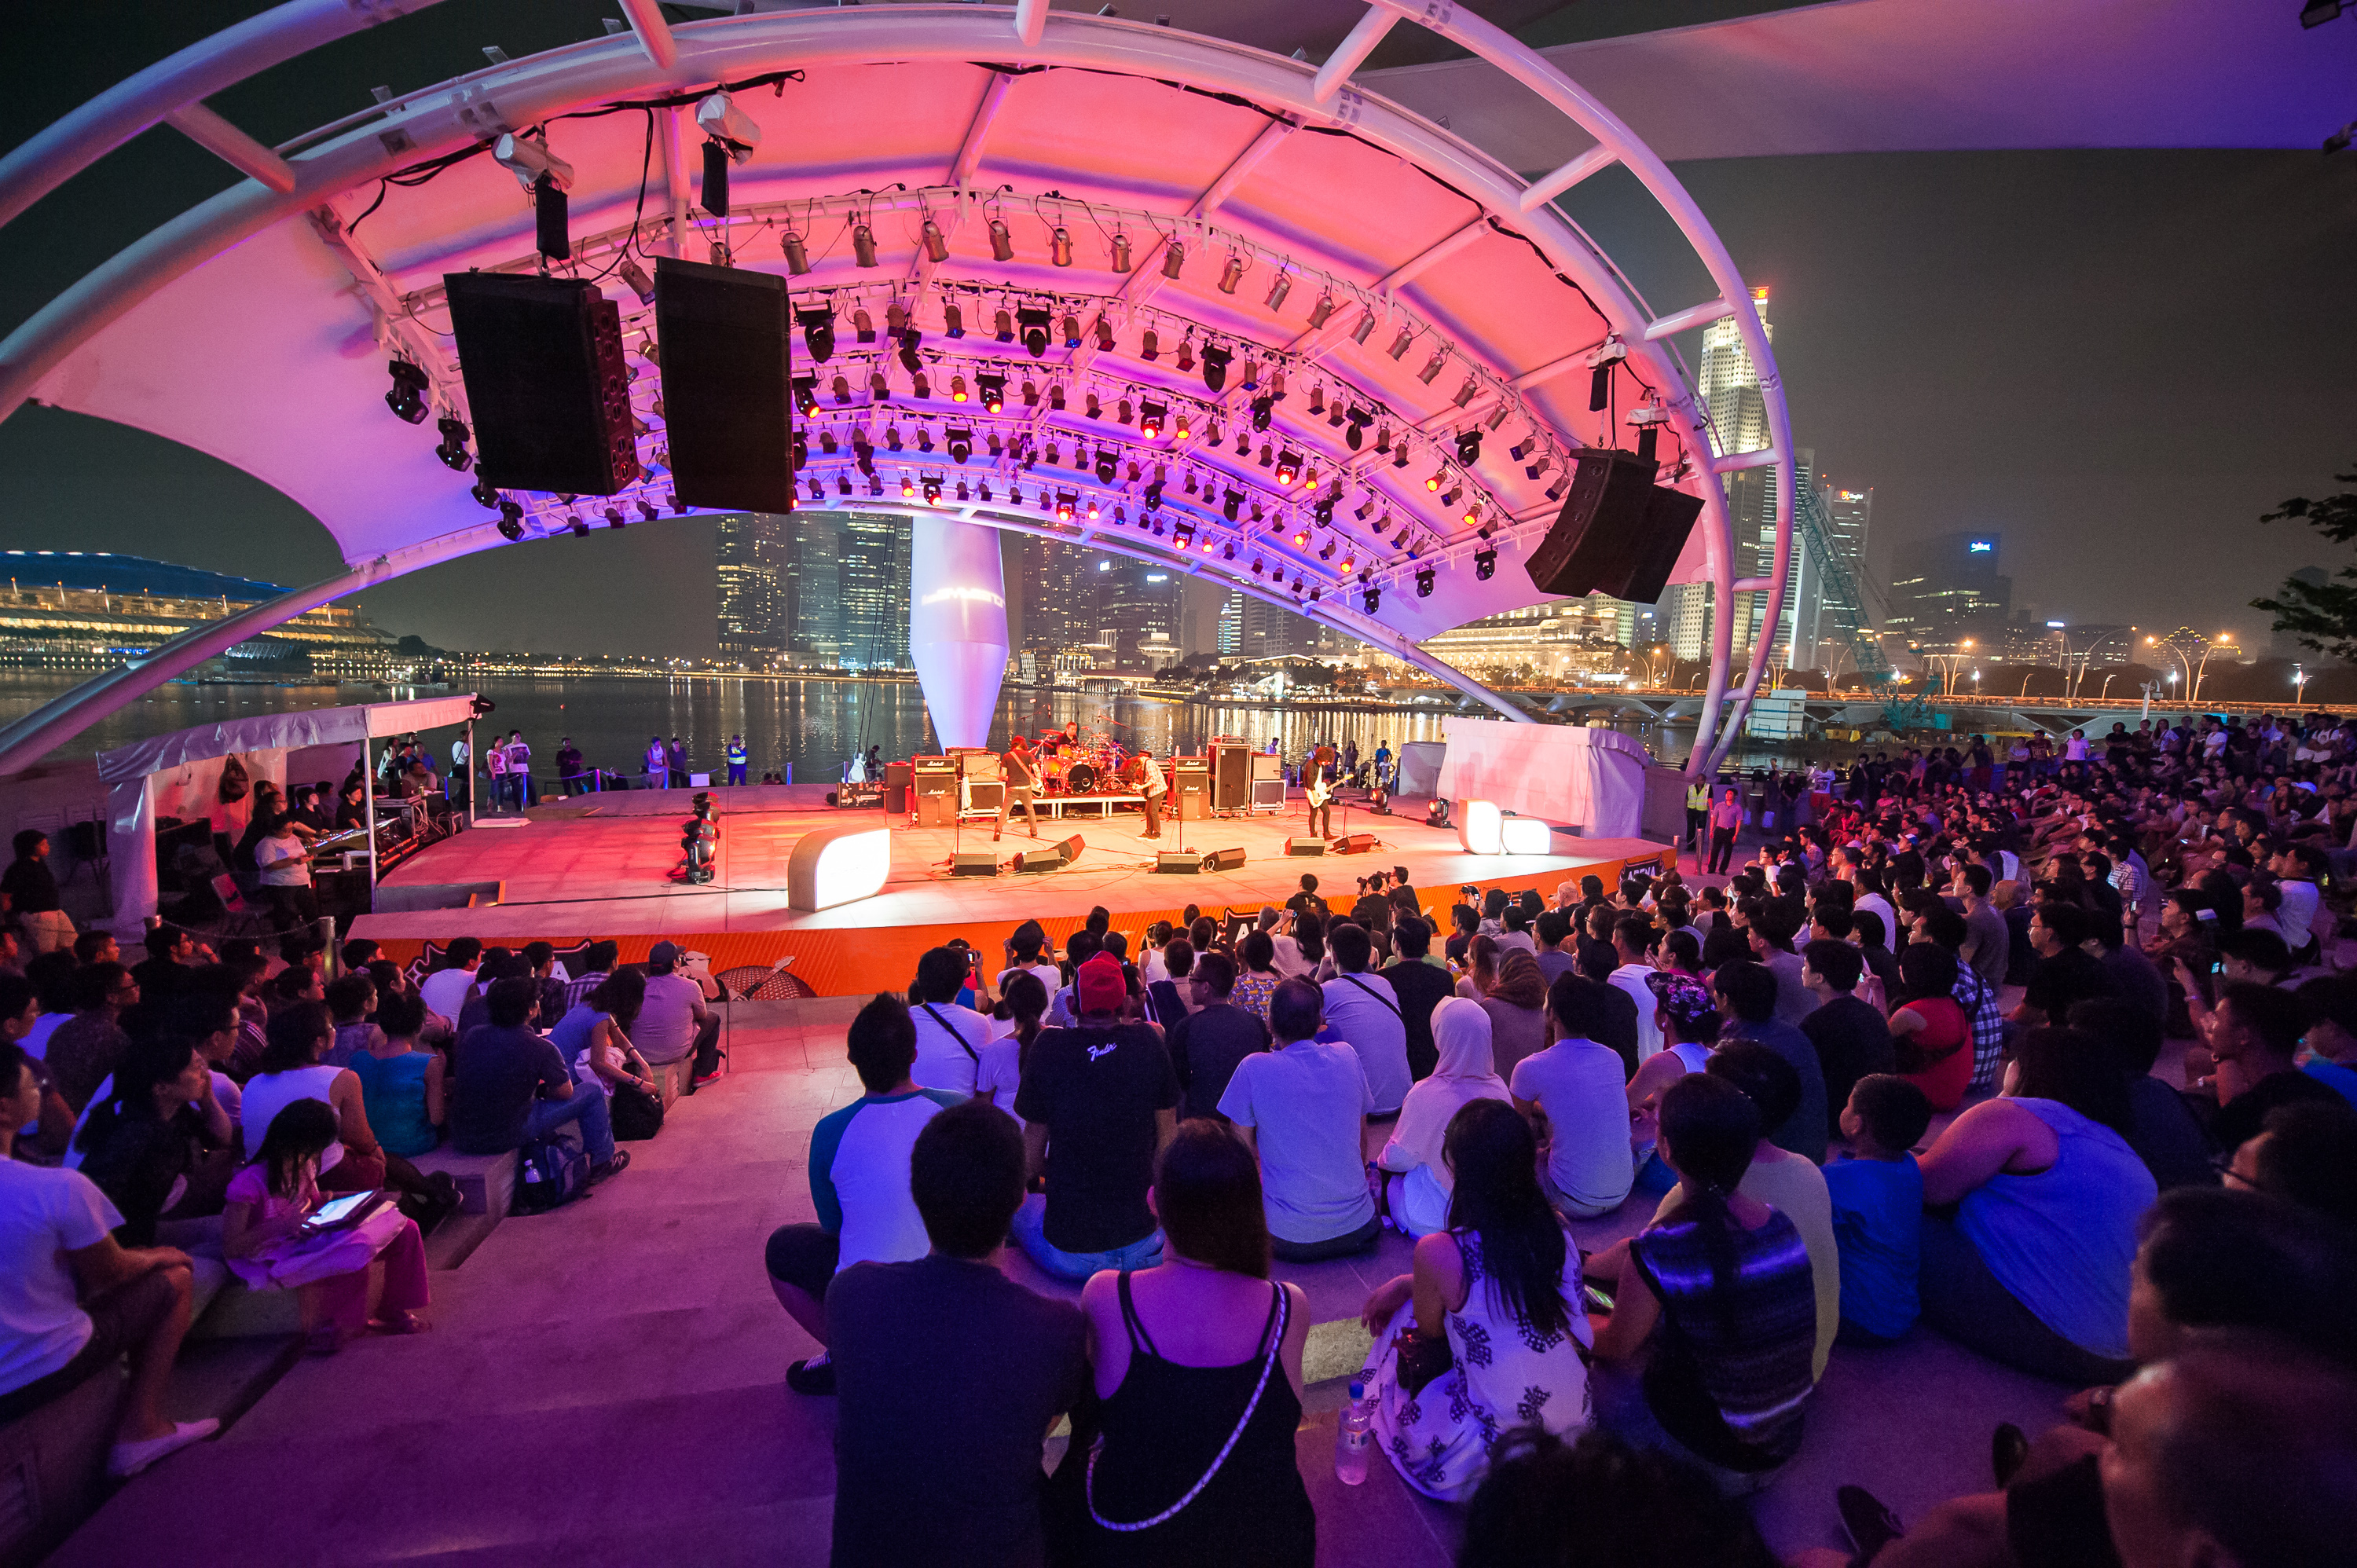 Esplanade Outdoor Theatre Photo courtesy: Esplanade - Theatres on the Bay